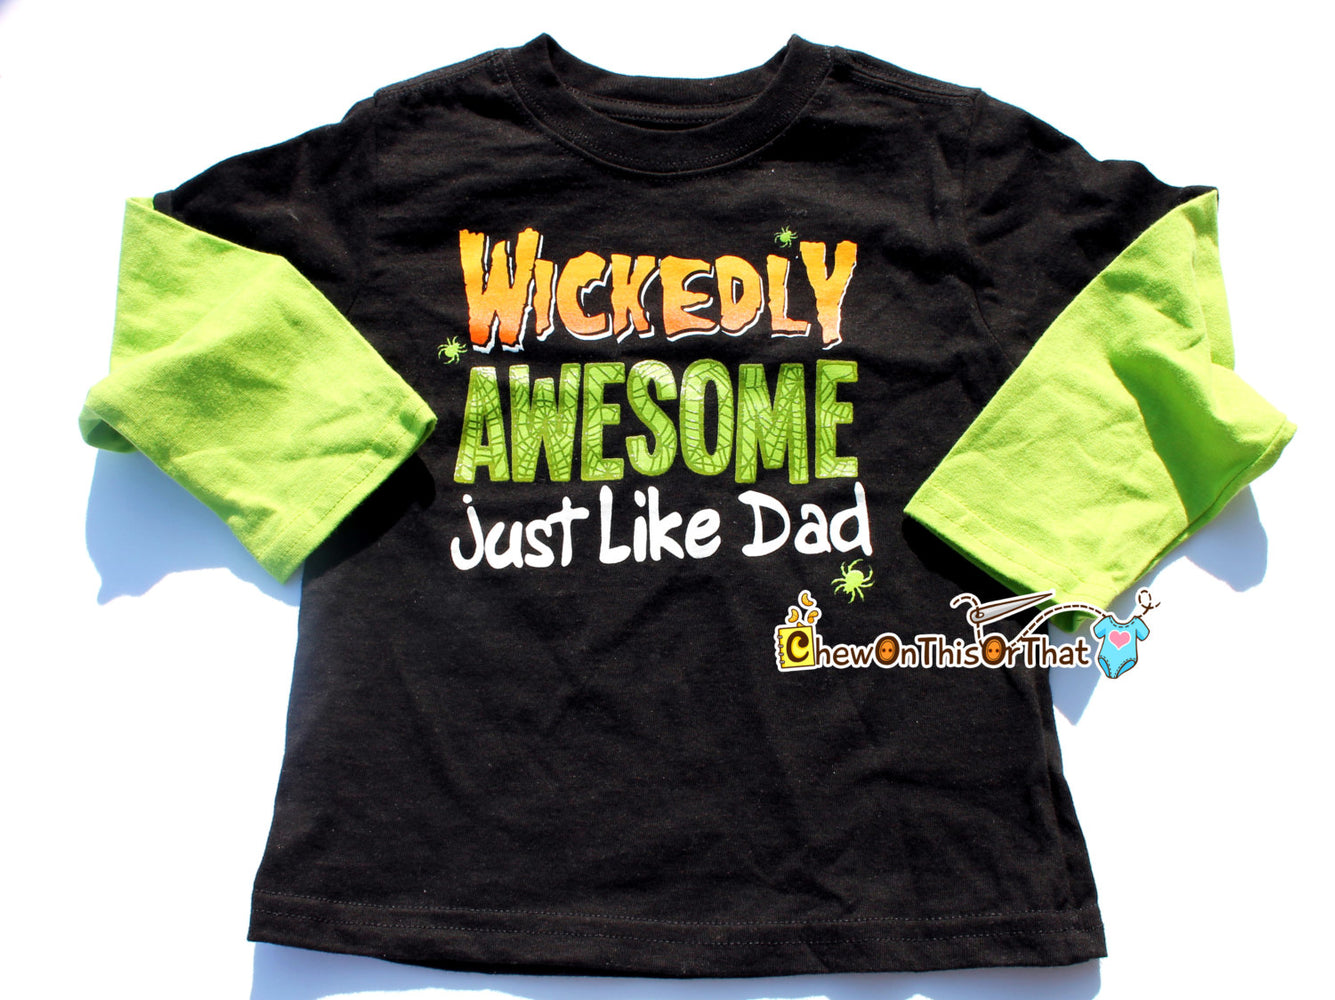 Chew On This or That - Wickedly Awesome Just Like Dad Toddler Halloween Shirt - Chew On This Or That